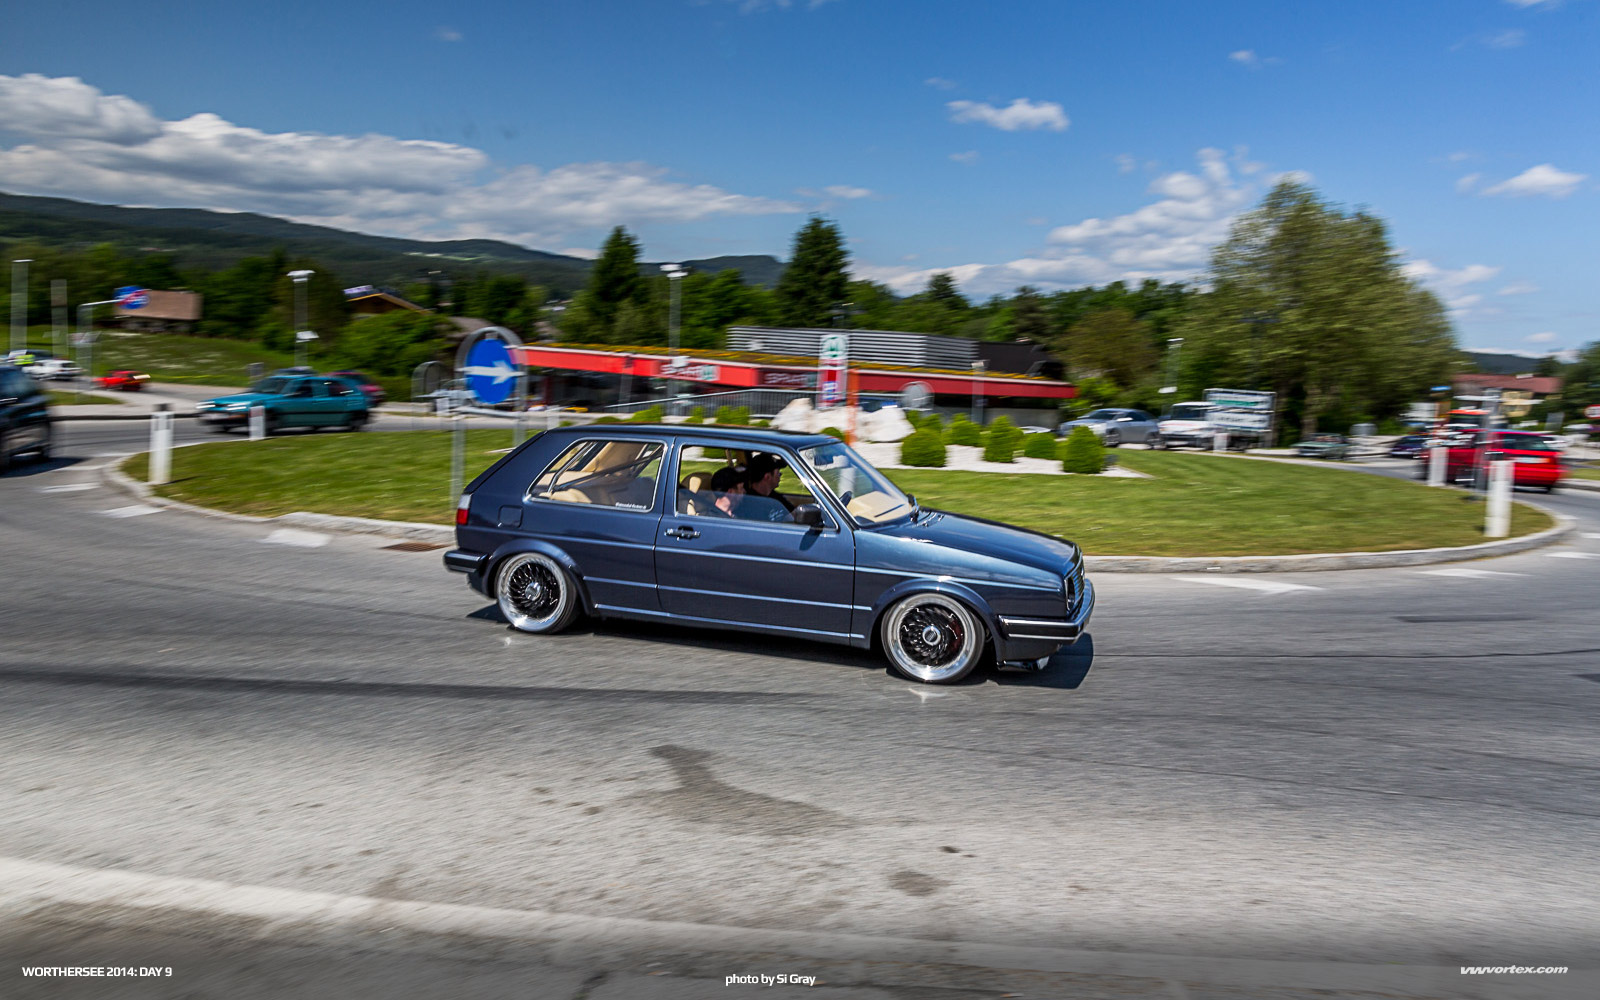 2014-Worthersee-Day-9-Si-Gray-401